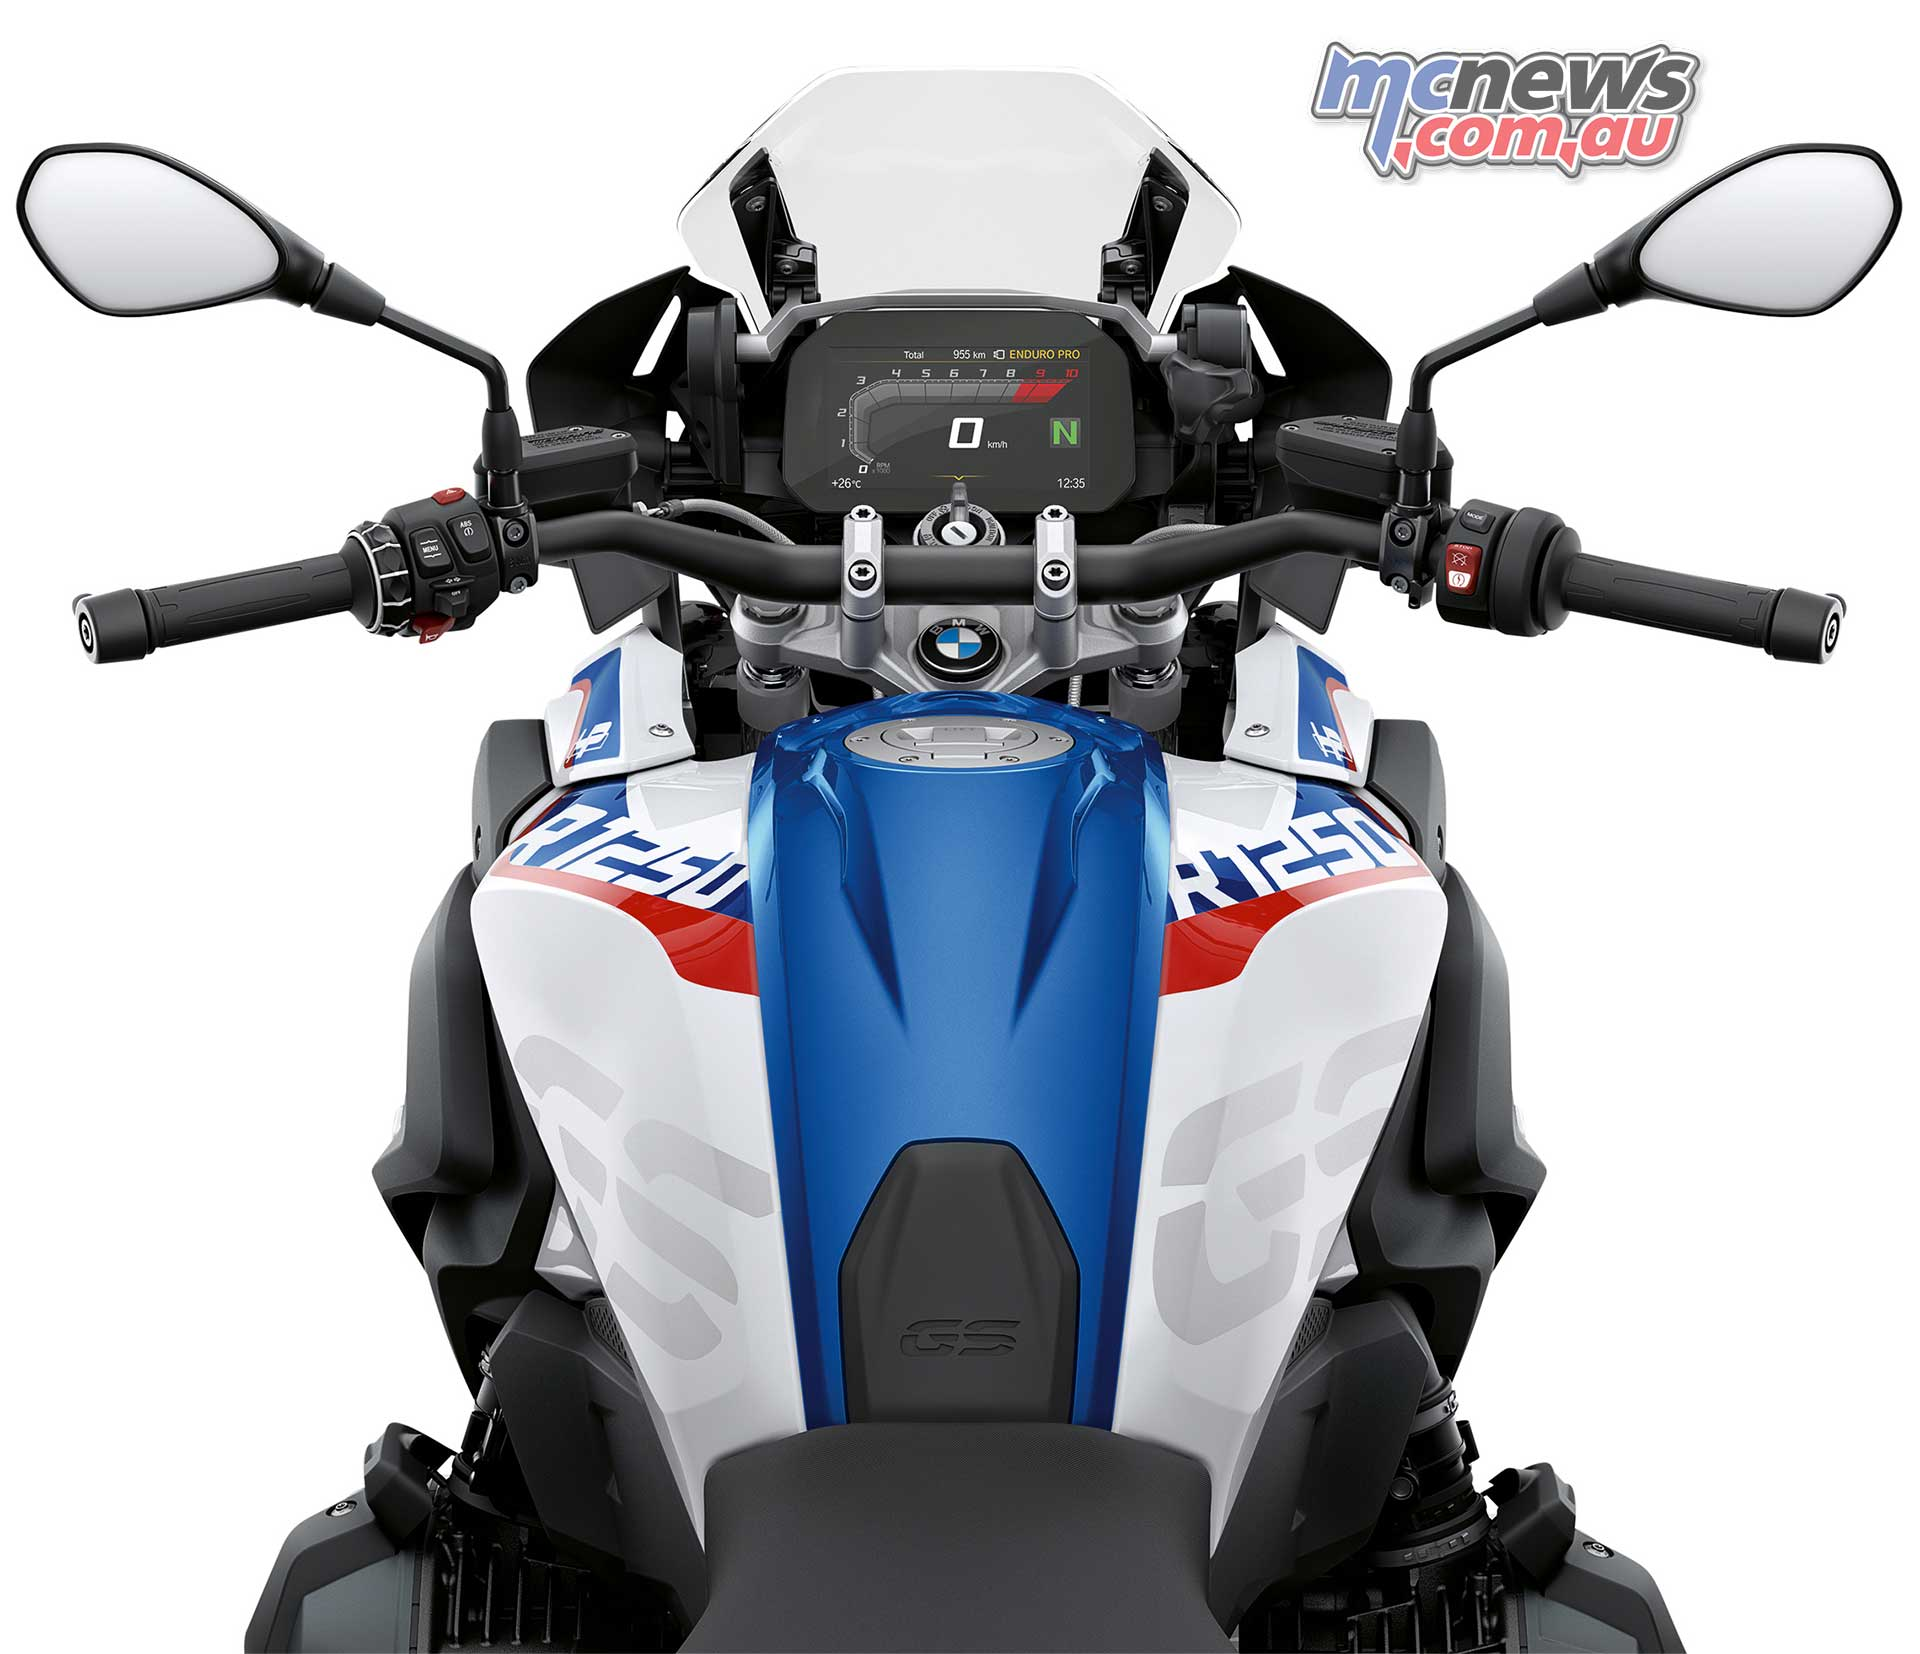 Astonishing 2019 Bmw R 1250 Gs More Grunt And More Tech Mcnews Com Au Ocoug Best Dining Table And Chair Ideas Images Ocougorg